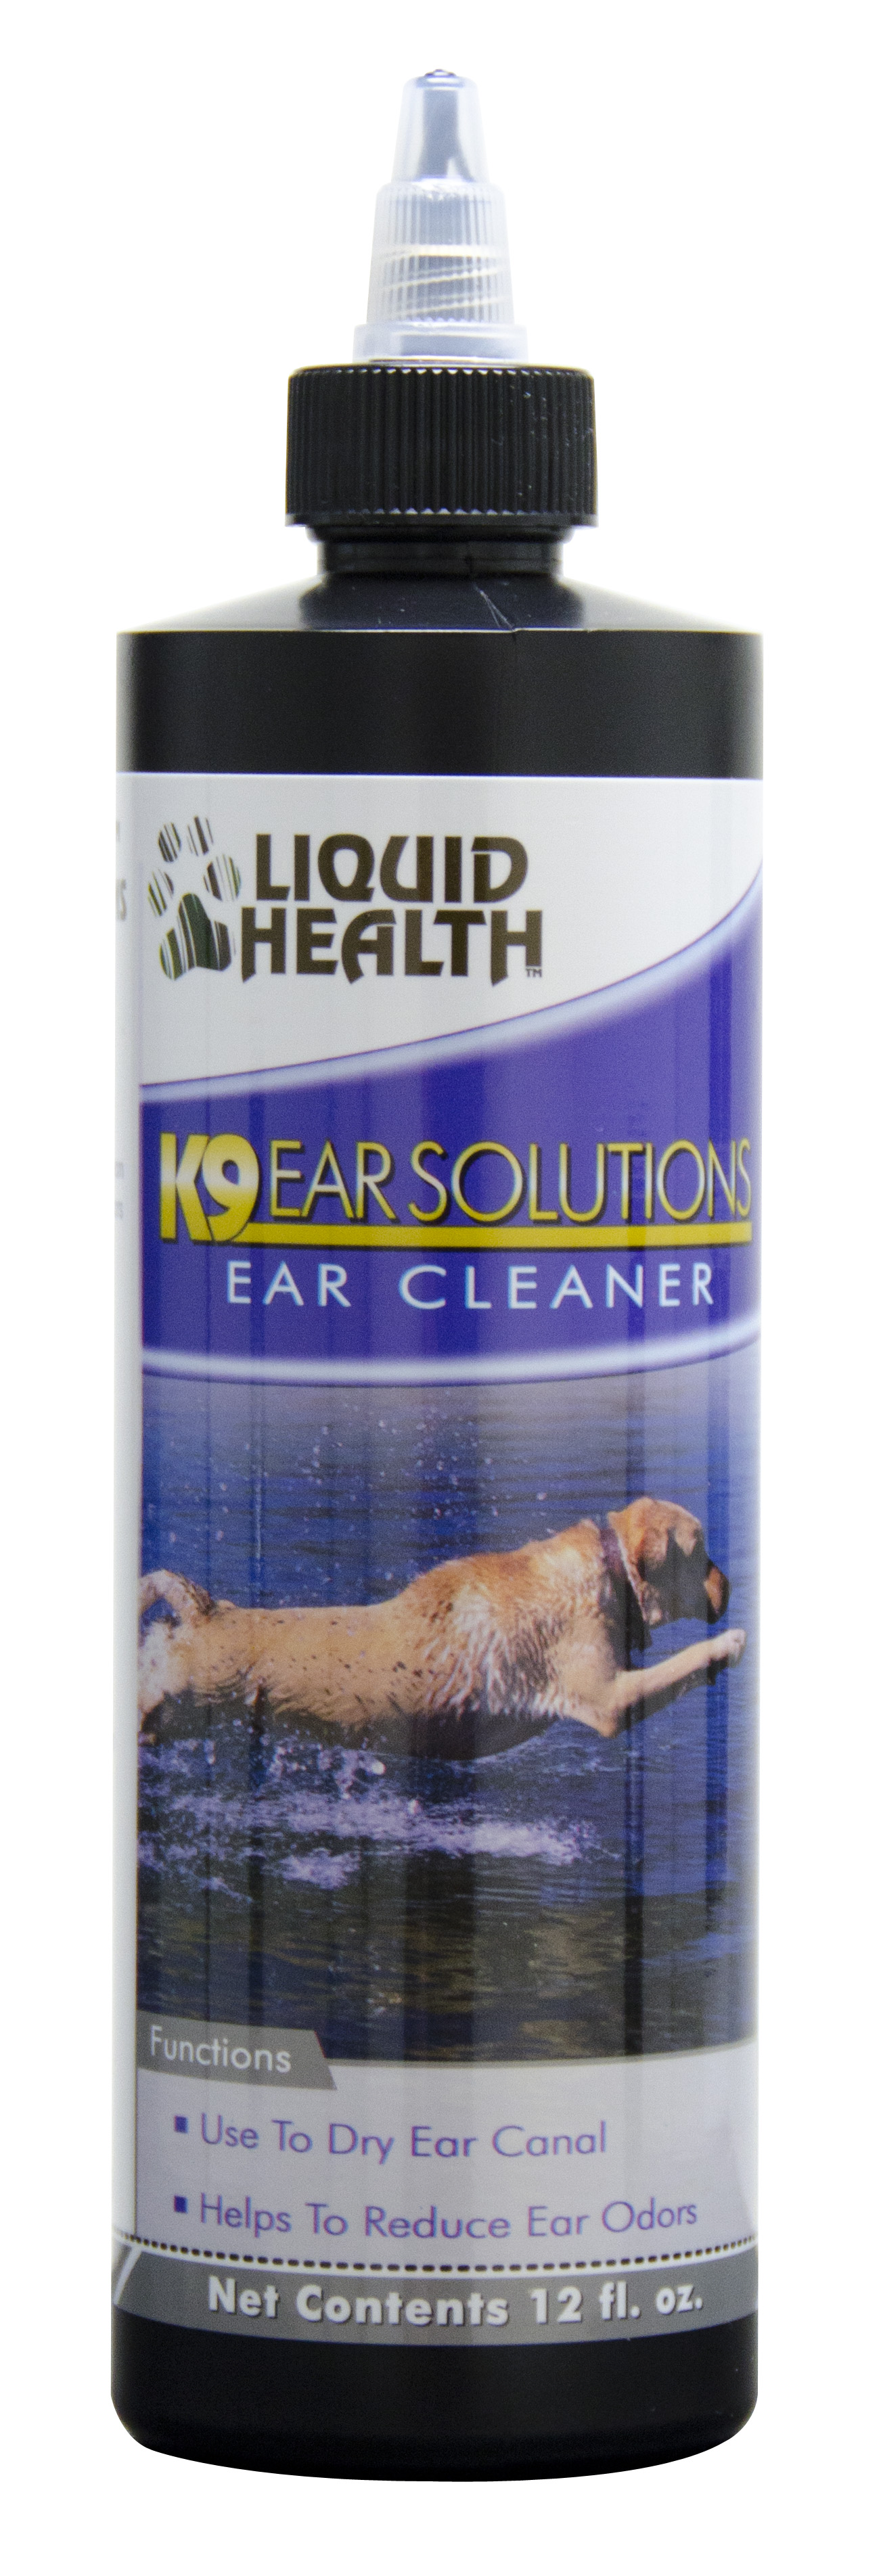 For Animals K9 Ear Solutions